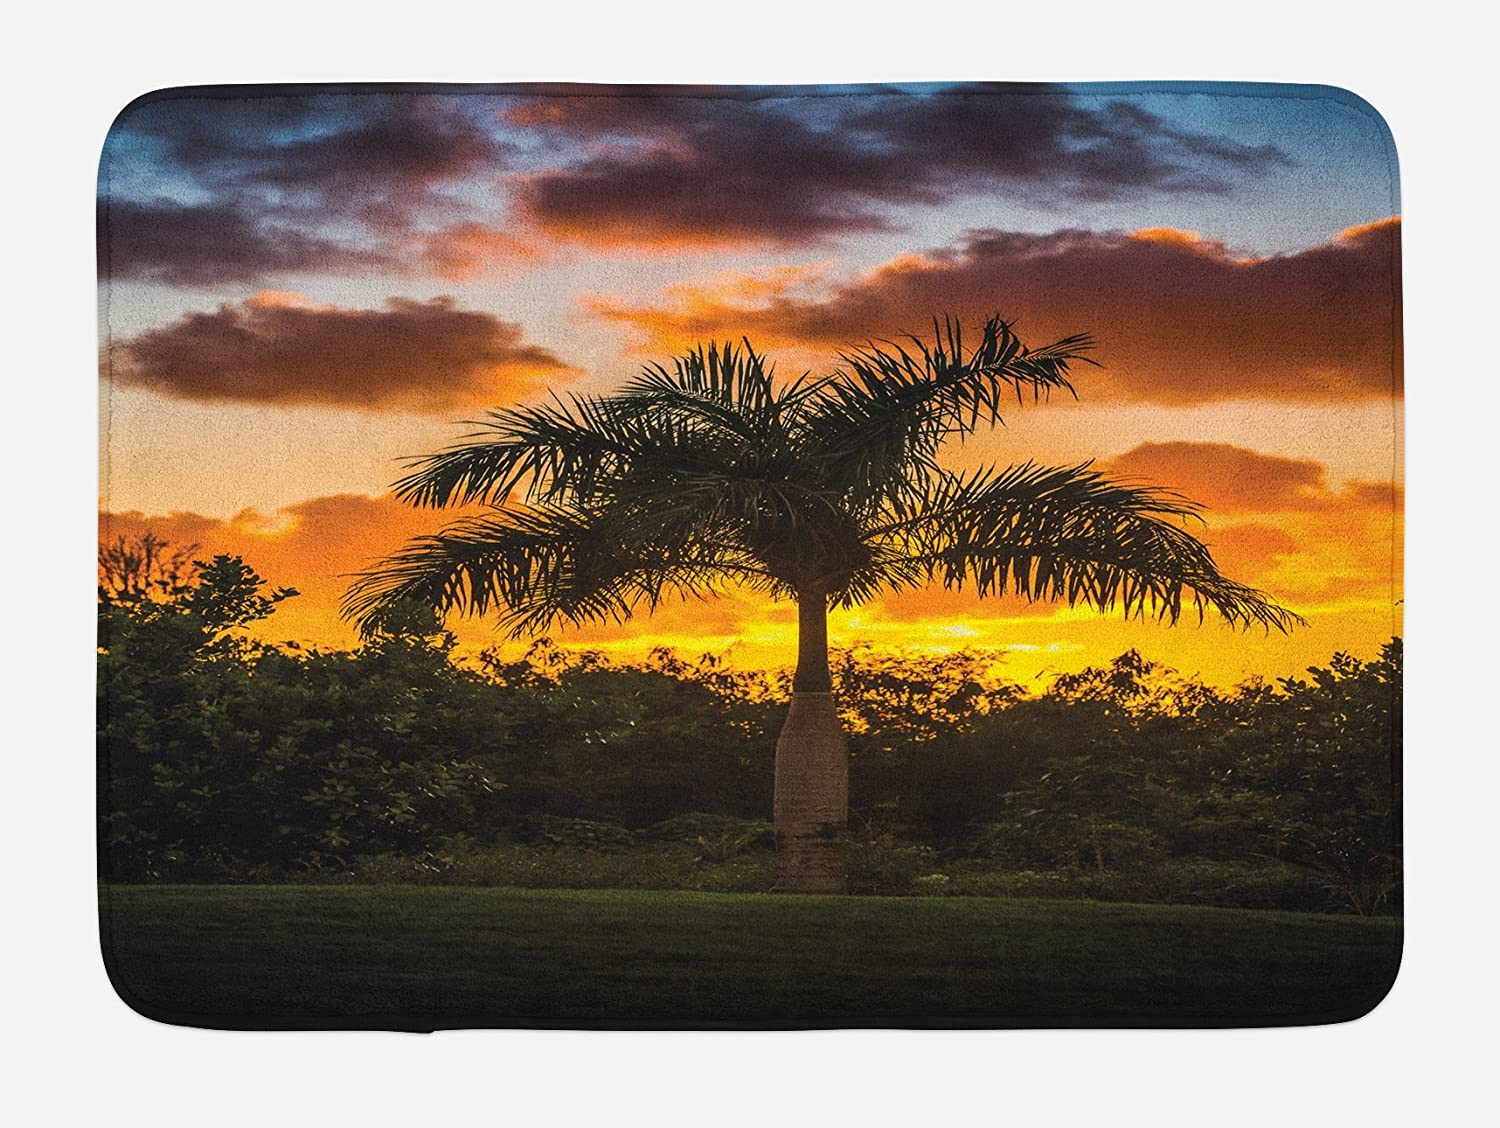 Ambesonne Palm Tree Bath Mat, Palm Tree Silhouette Scene at The Sunset Twilight Tranquility in Nature Image, Plush Bathroom Decor Mat with Non Slip Backing, 29.5